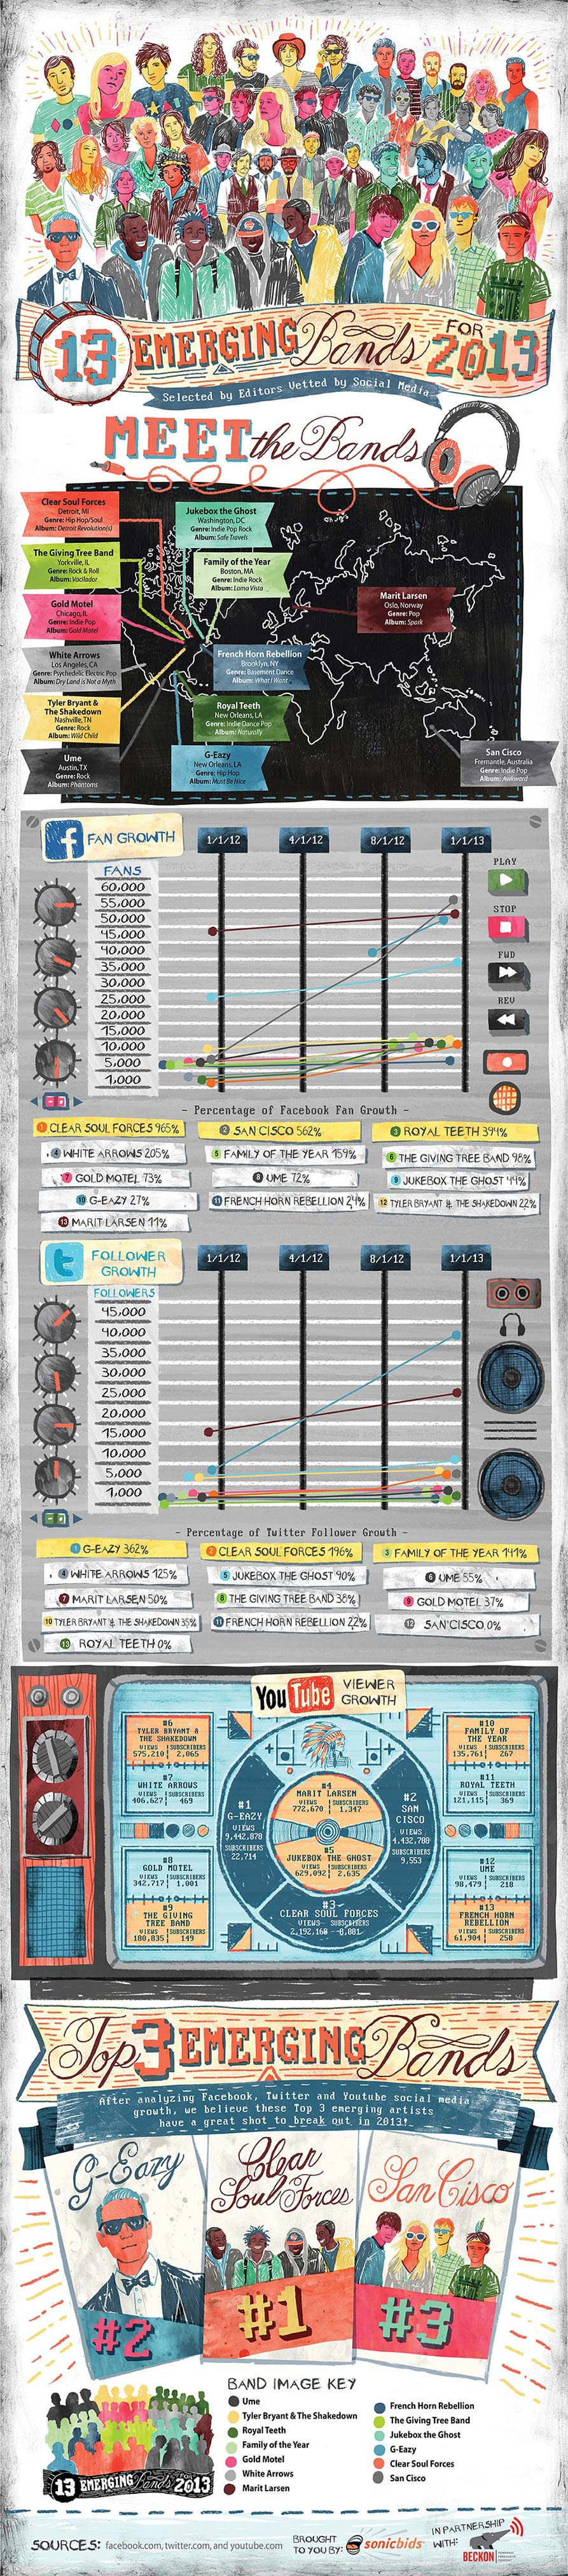 Music Bands of 2013-Infographic